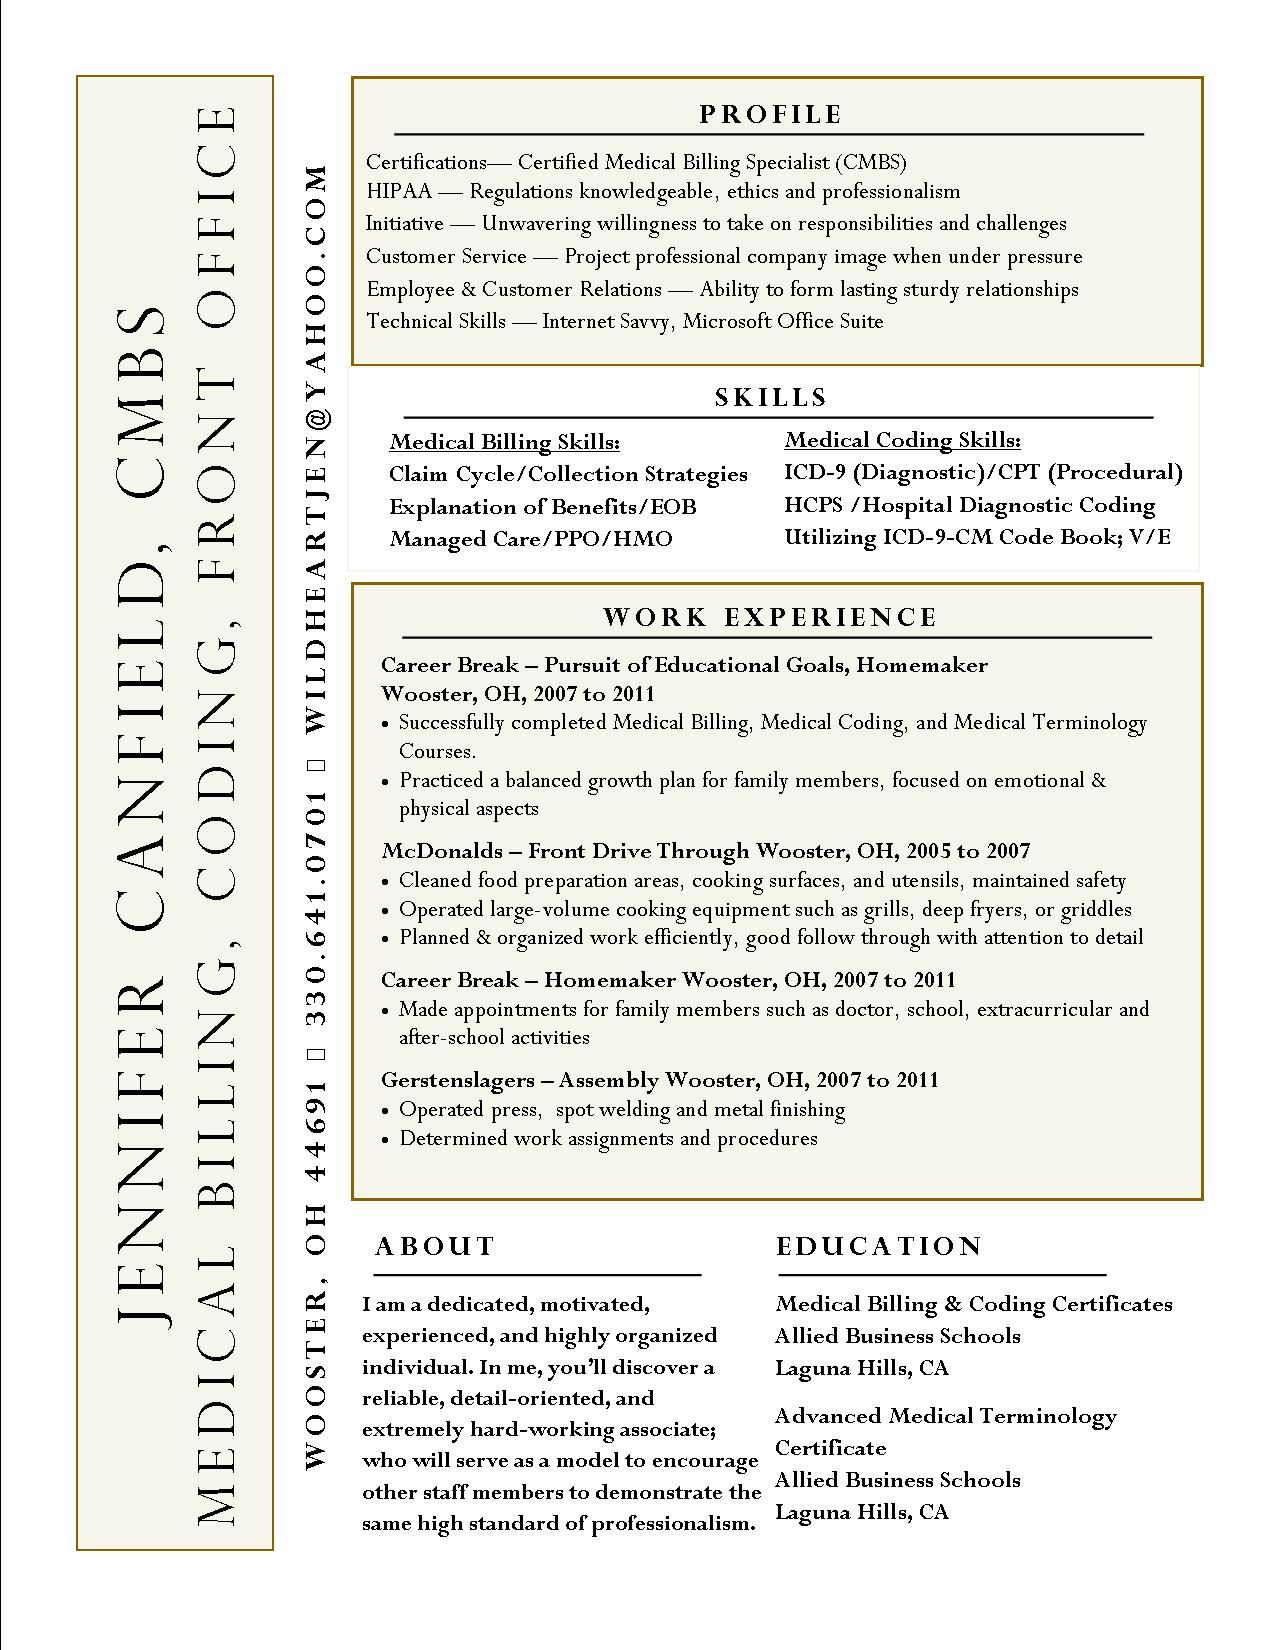 Resume Resume Medical Coder interesting resume idea not sure i like the name on side difficult to